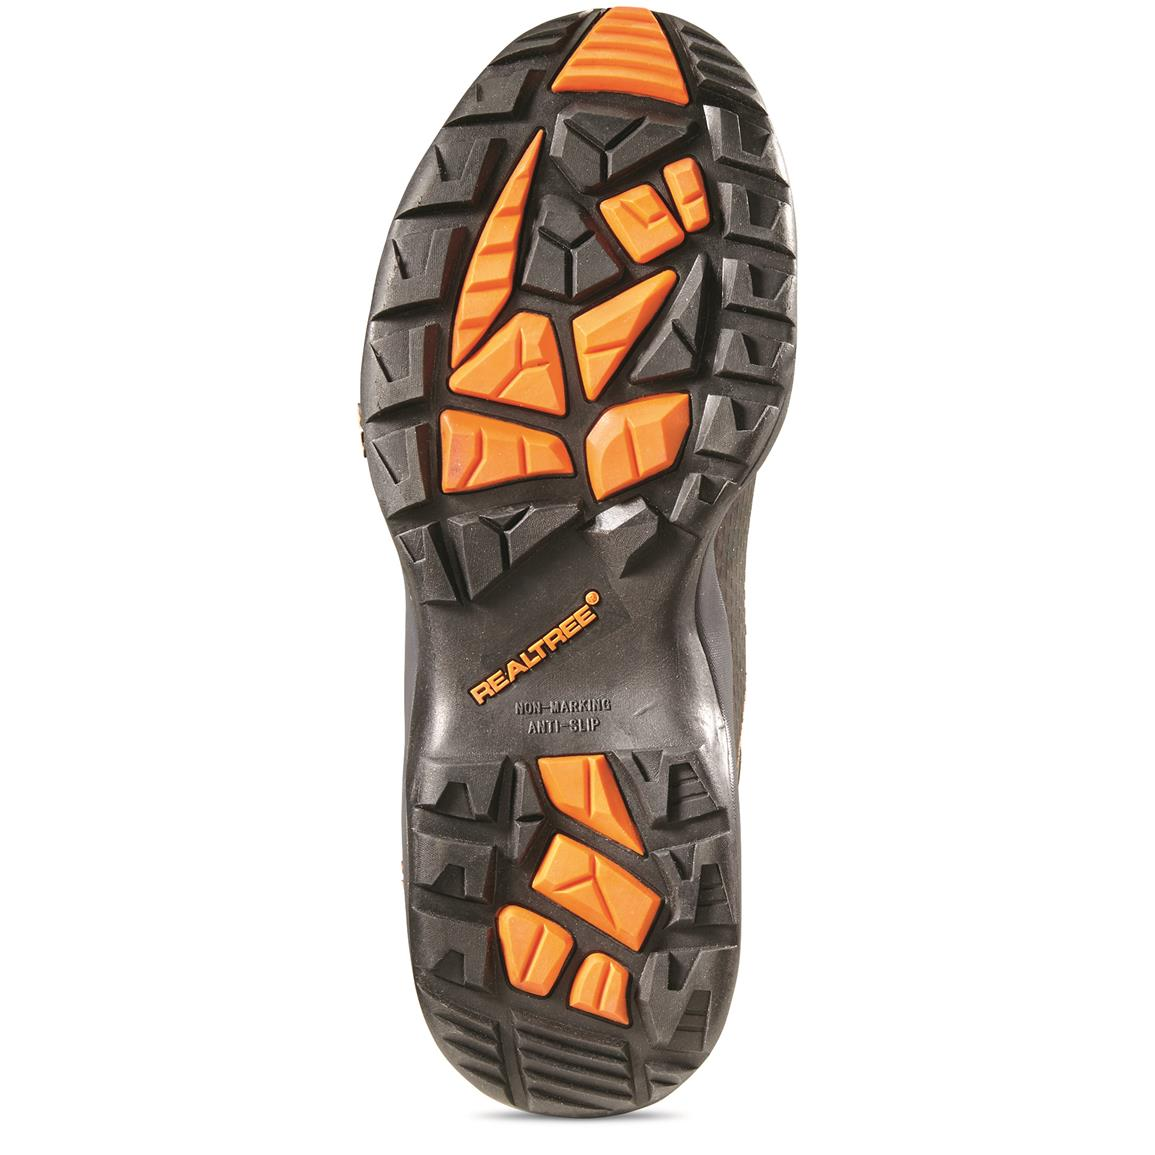 Non-marking rubber outsole provides rugged traction